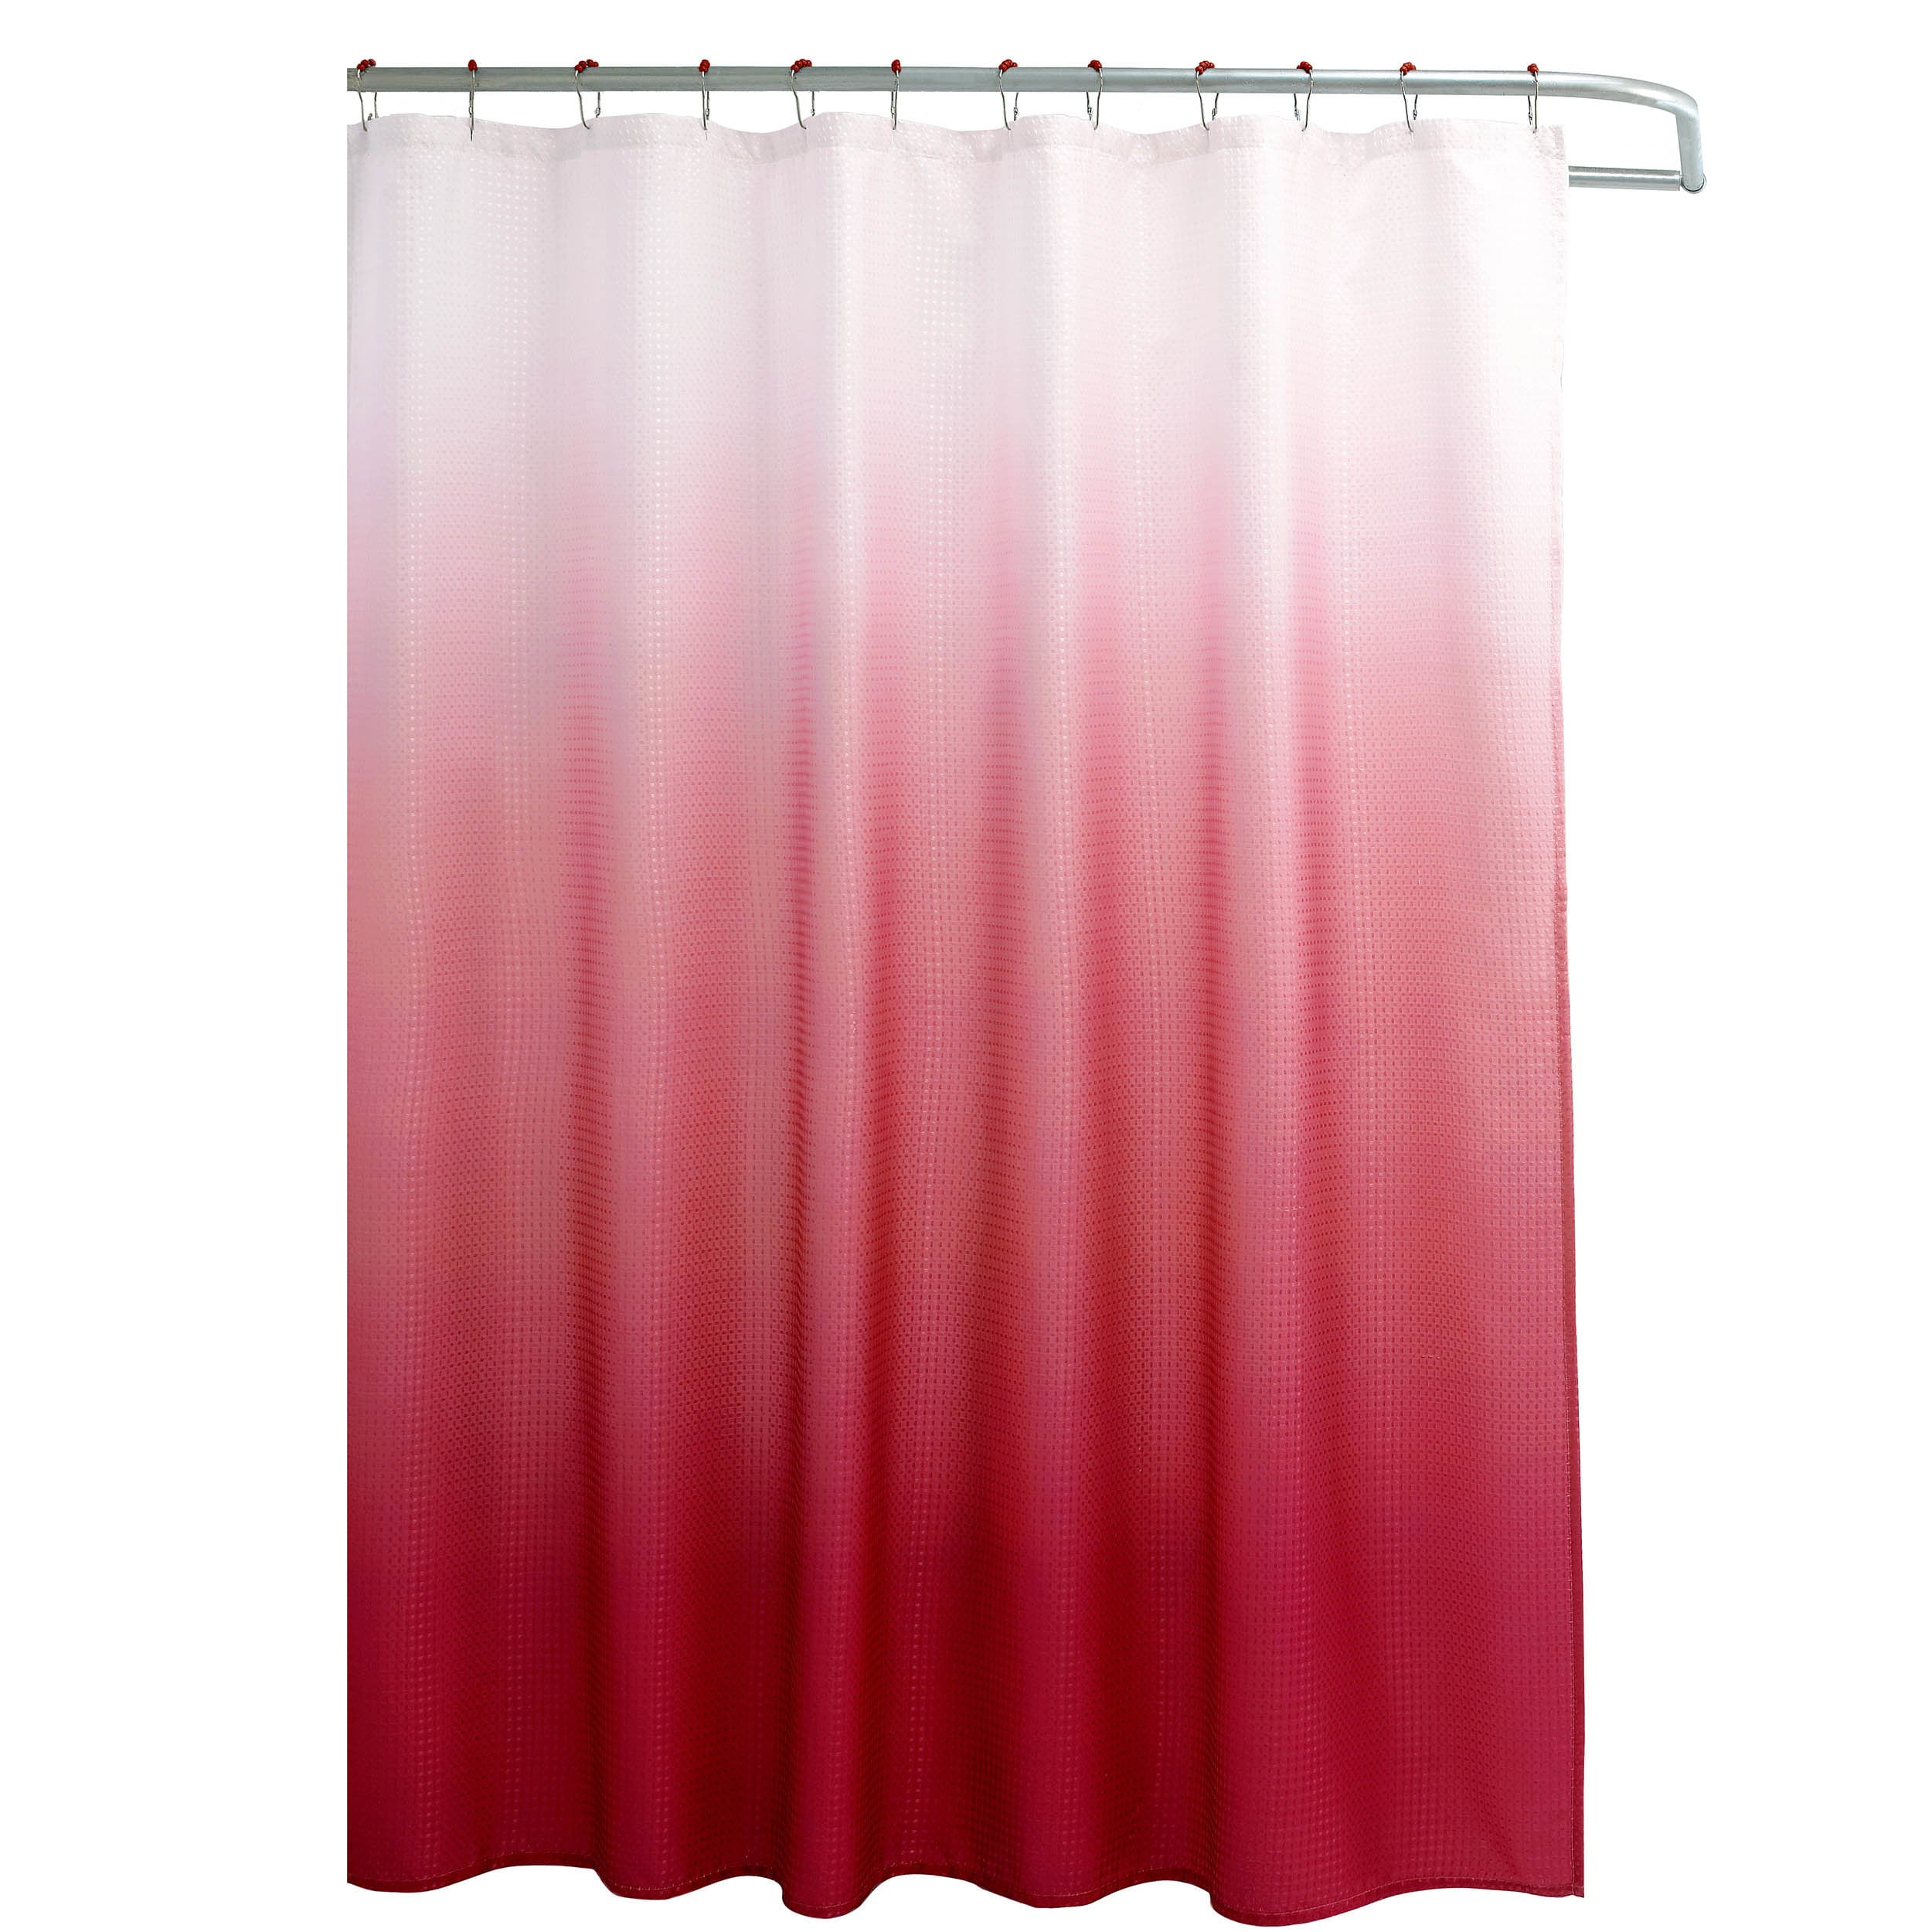 Shop Creative Home Ideas Ombre Waffle Weave Shower Curtain w/ 12 ...